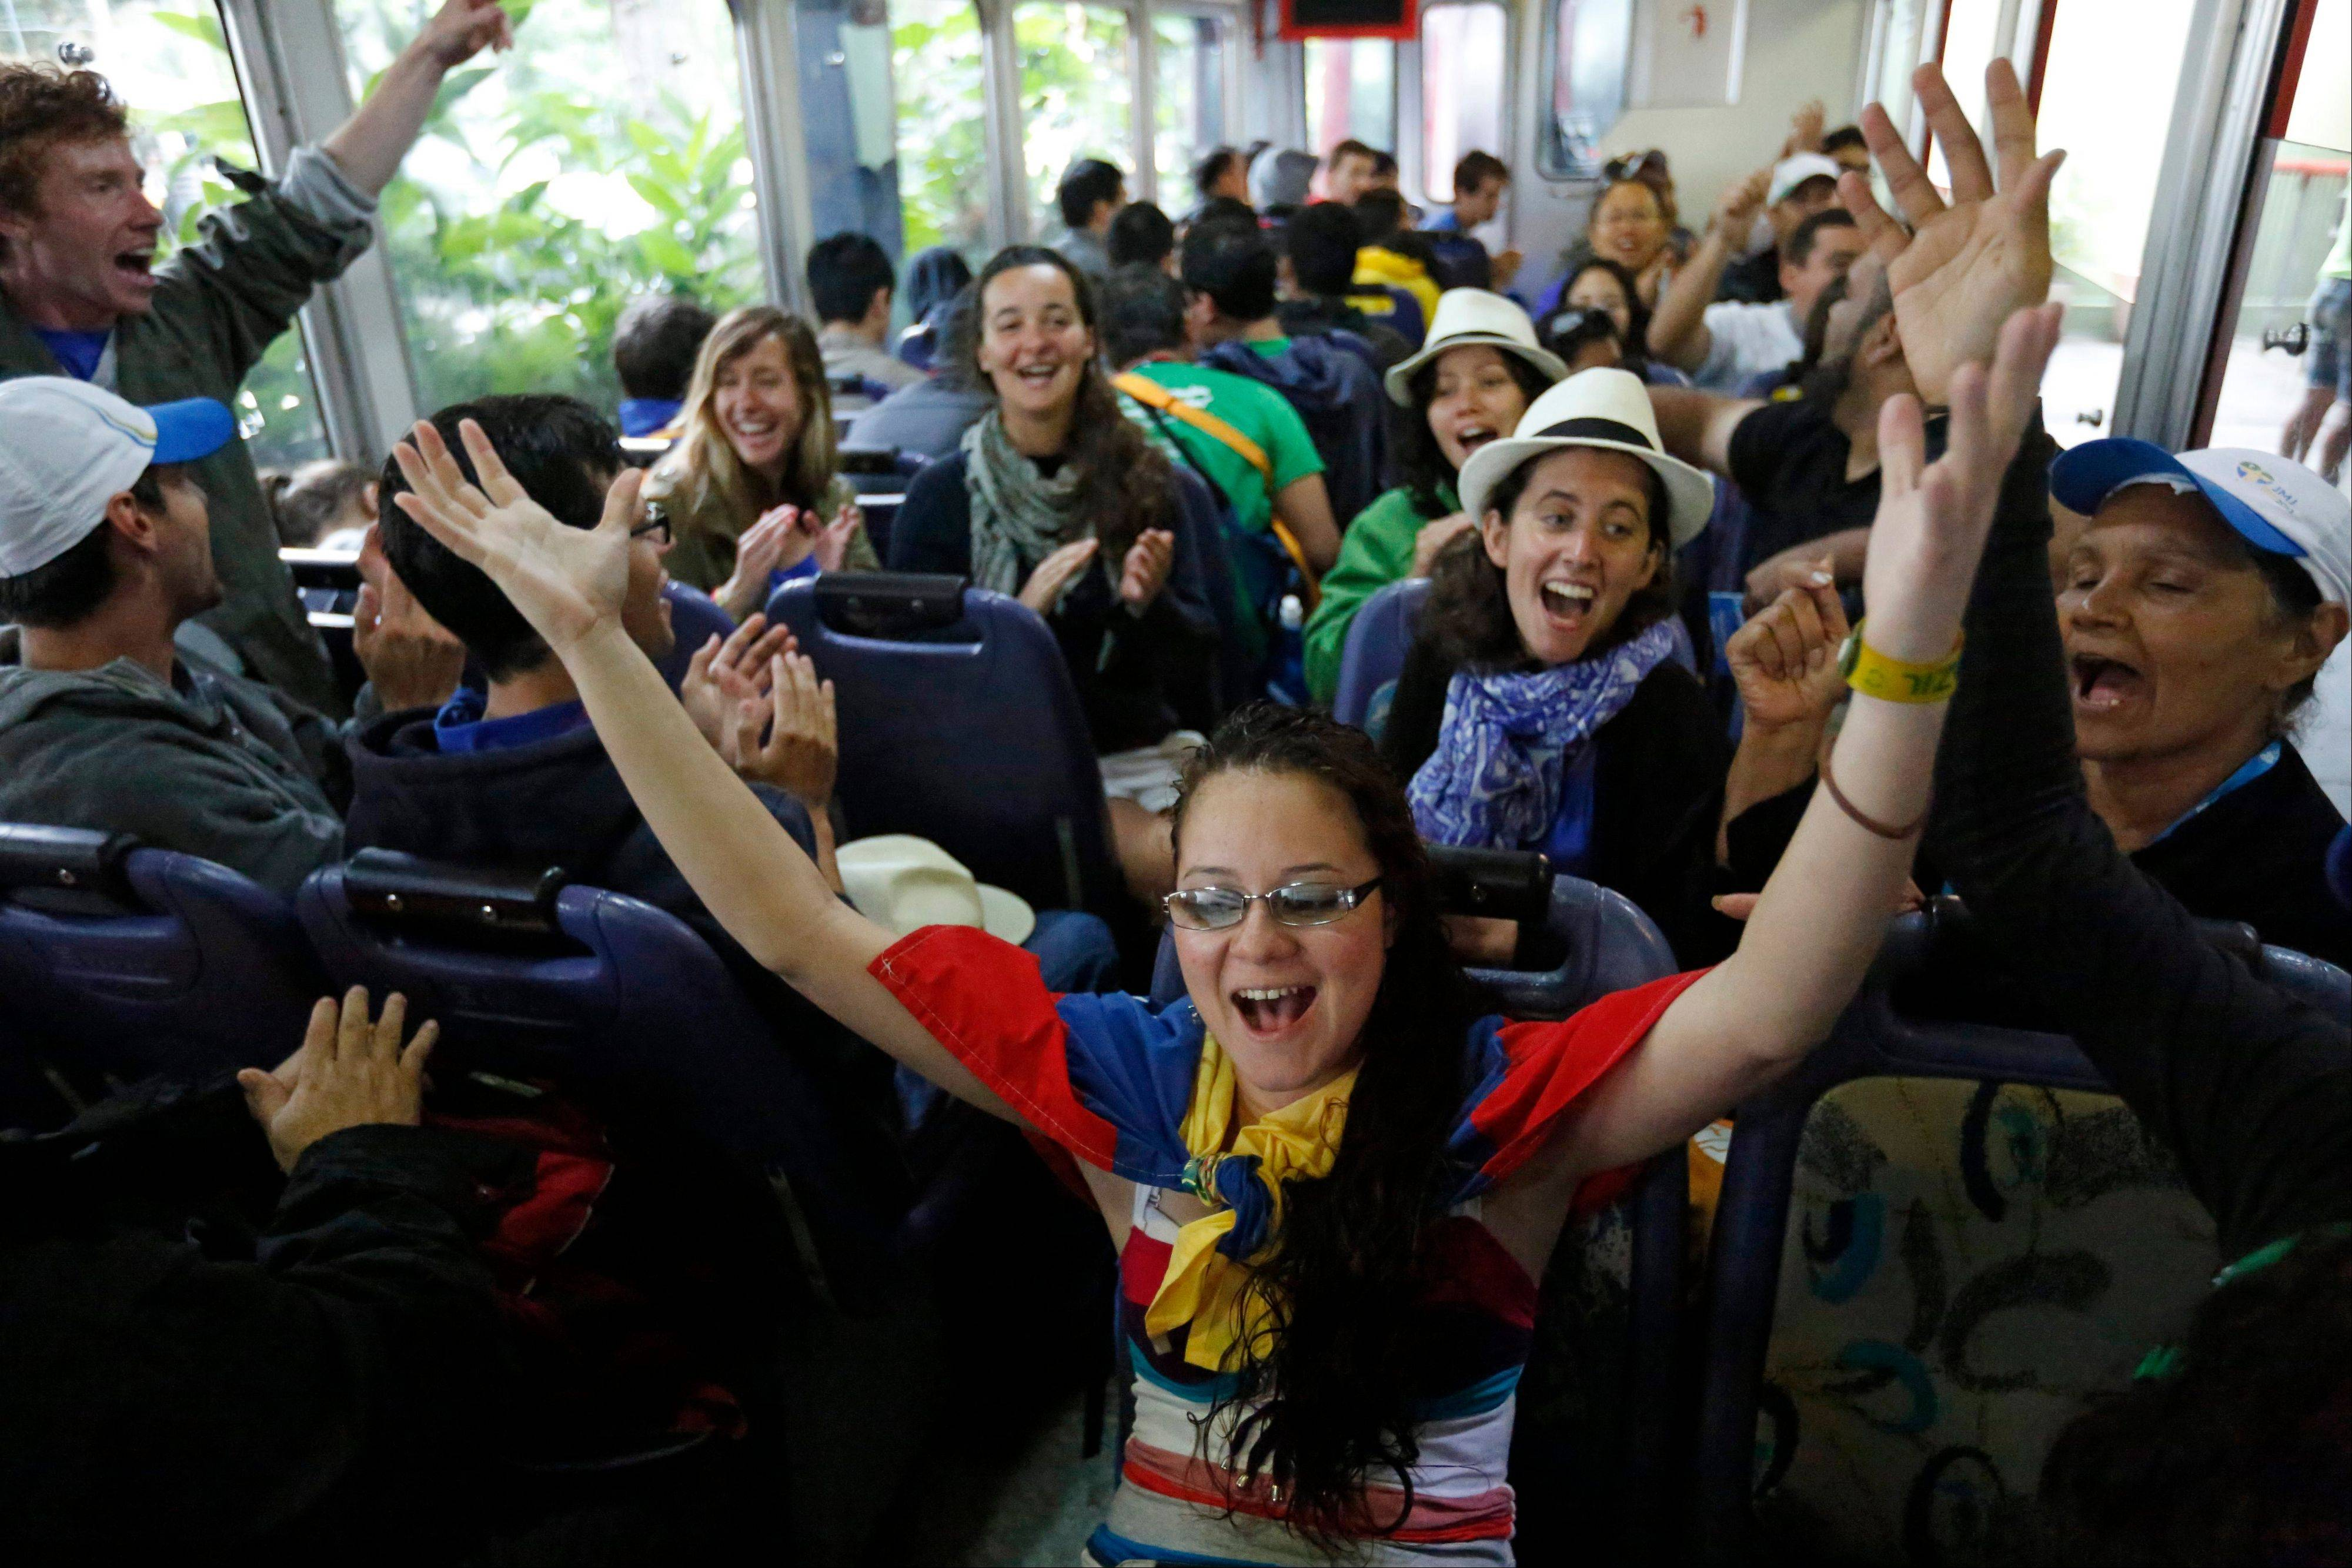 Youth from France, Venezuela and Canada who are in Brazil for World Youth Day events sing songs as they ride in a train that travels to Corcovado mountain where the statue Christ the Redeemer stands over Rio de Janeiro, Brazil, Tuesday, July 23, 2013. The pope is here on a seven-day visit meant to fan the fervor of the faithful around the globe.